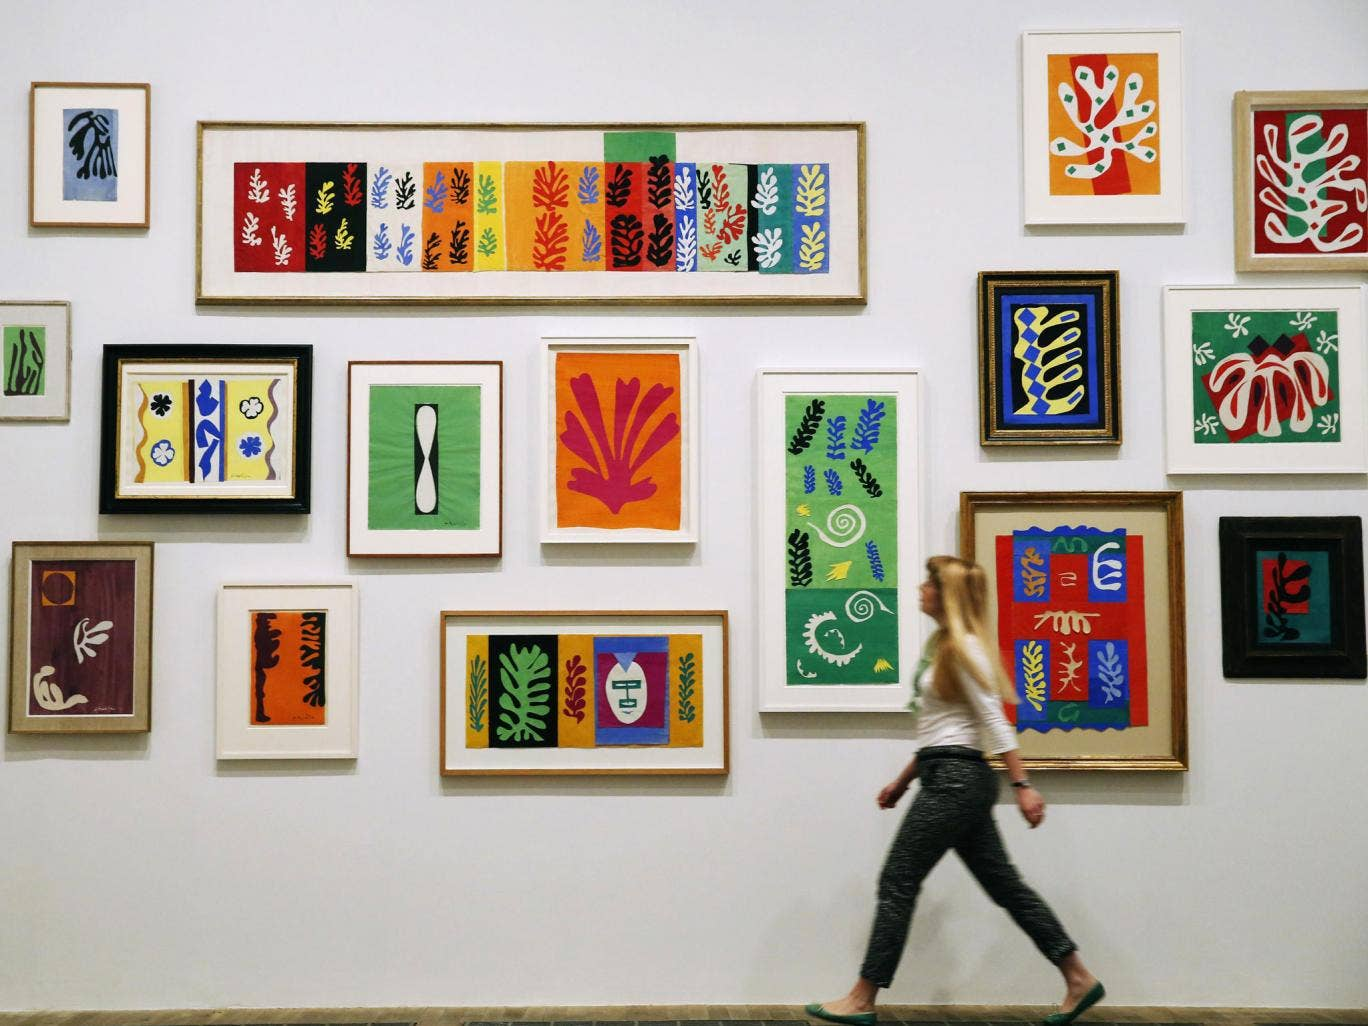 Henry Matisse: The Cut-Outs is exhibiting at the Tate Modern from 17 April to 7 September 2014